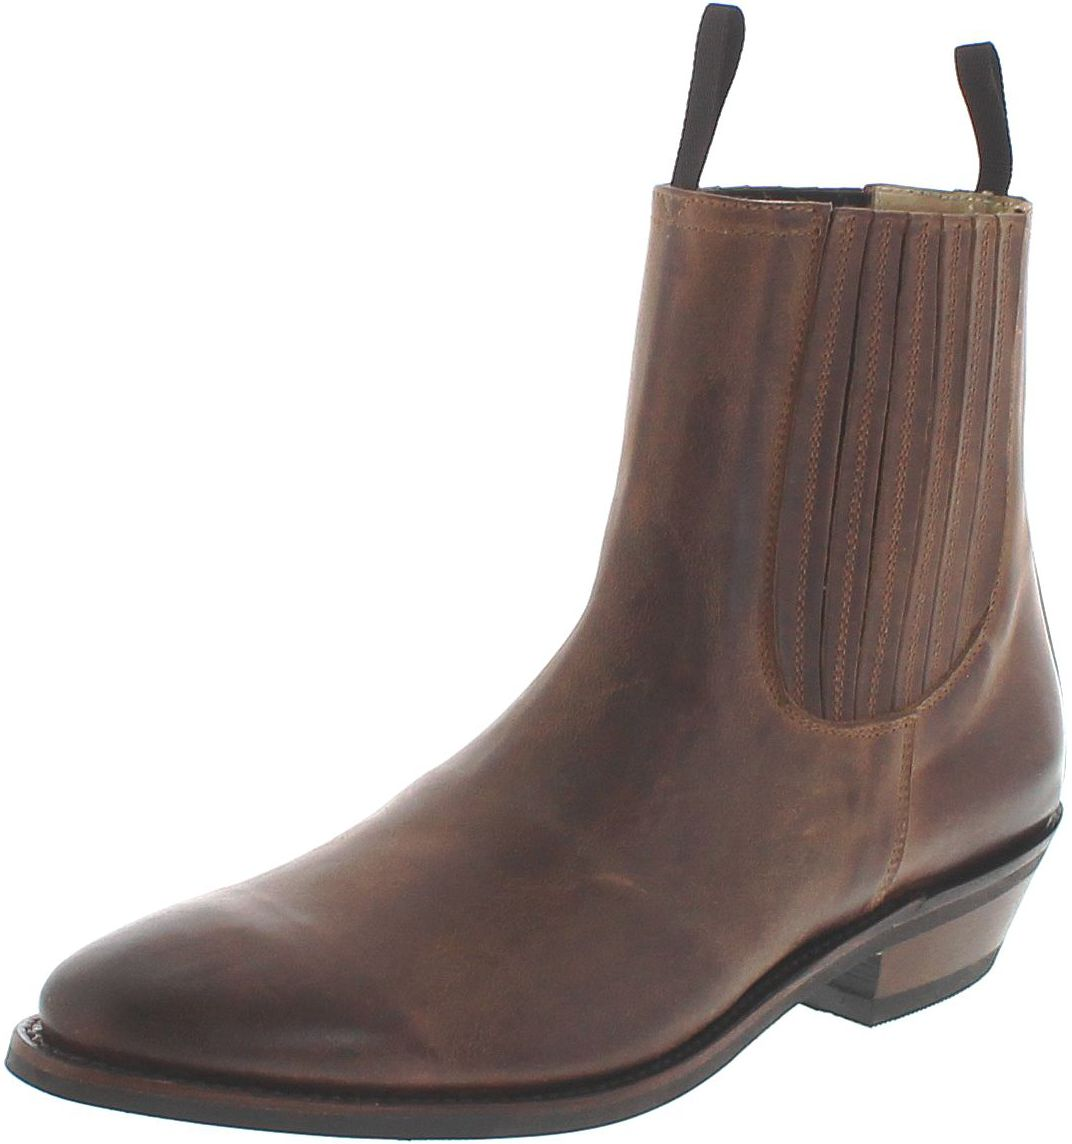 Fashion Boots BU1015 Beirut Camello Chelsea boot - brown